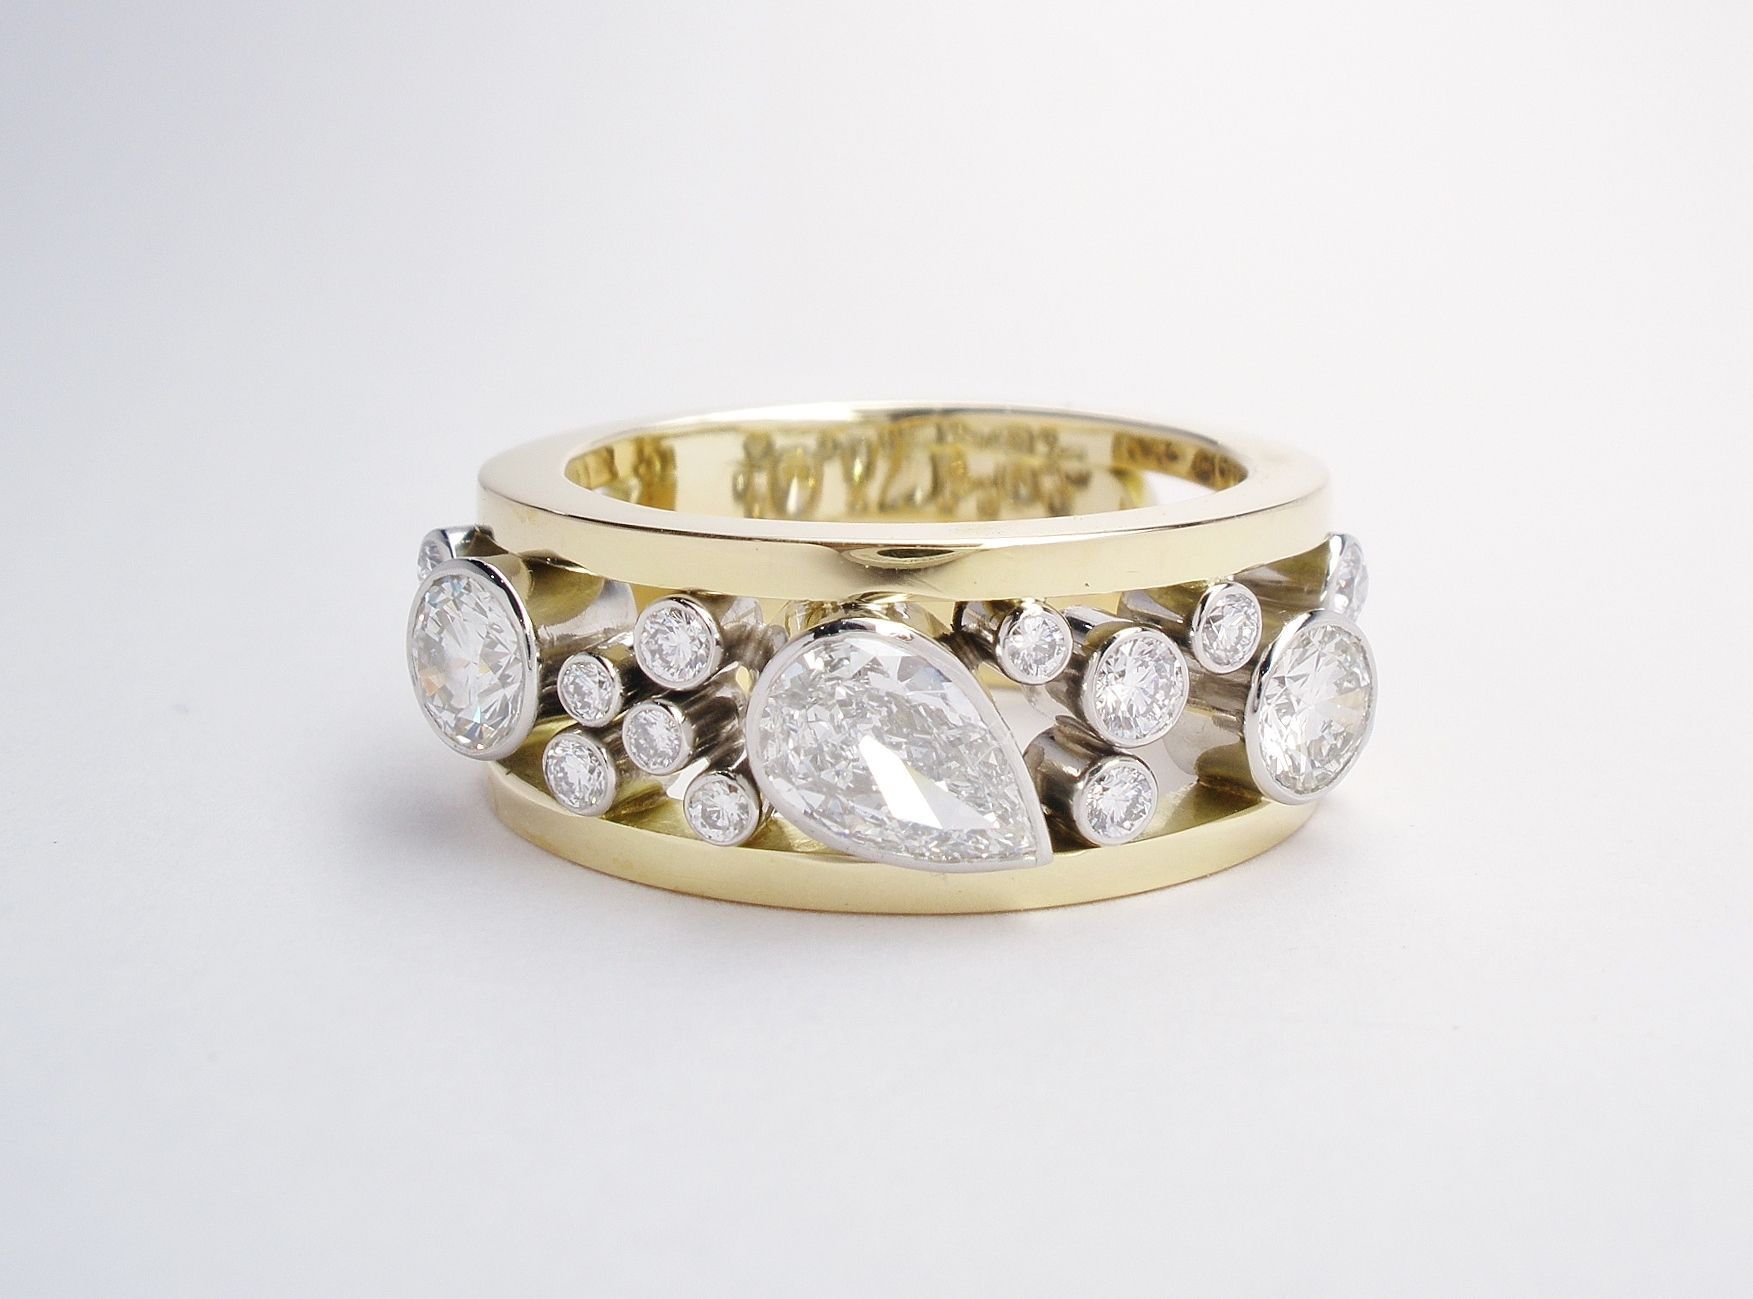 An 18 stone rub-over set pear shaped diamond and round brilliant cut diamond ring mounted in platinum & 18ct. yellow gold.